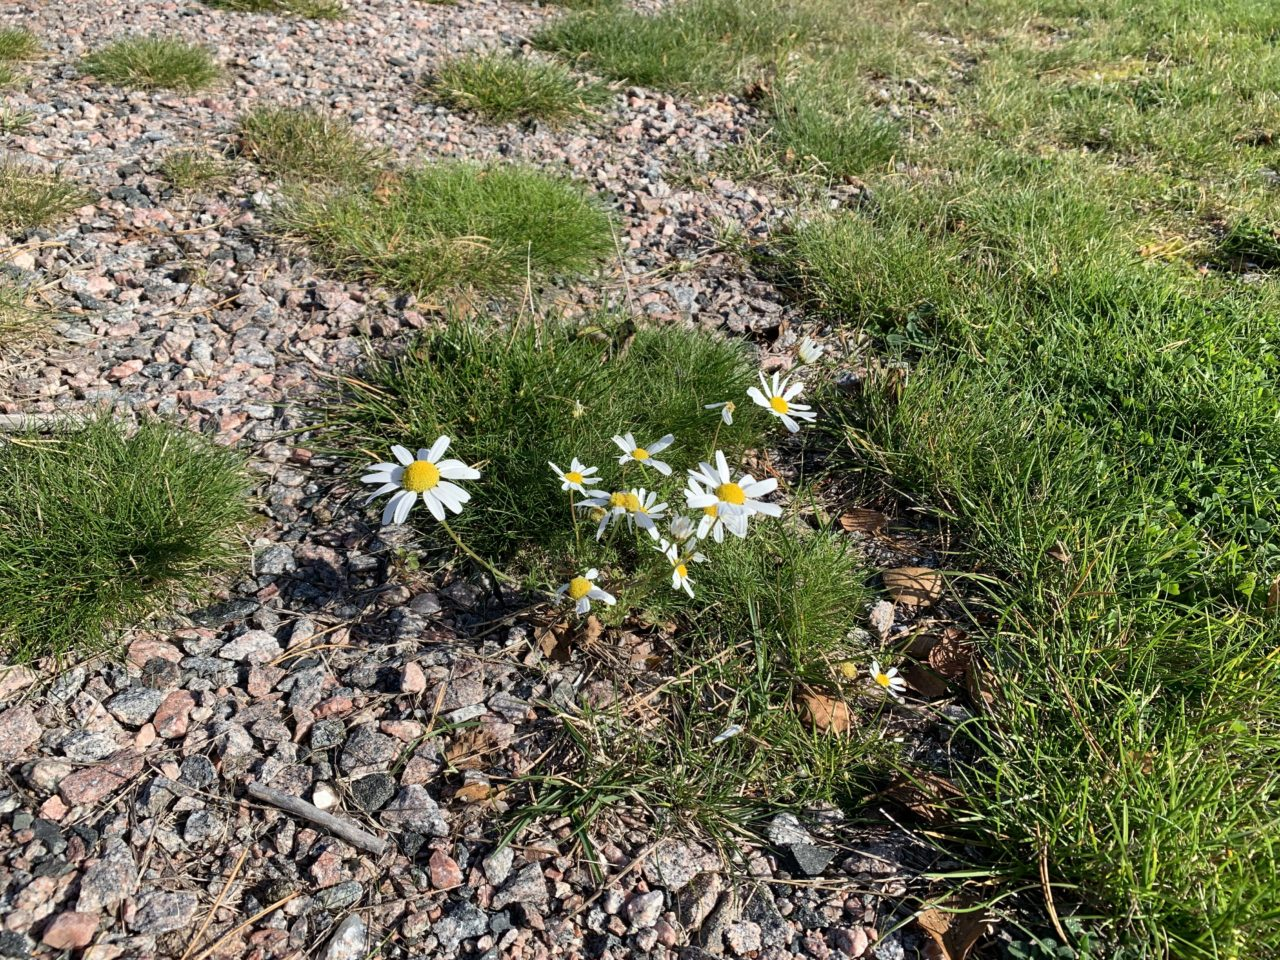 White And Yellow Daisy Flowers In Grass And Gravel